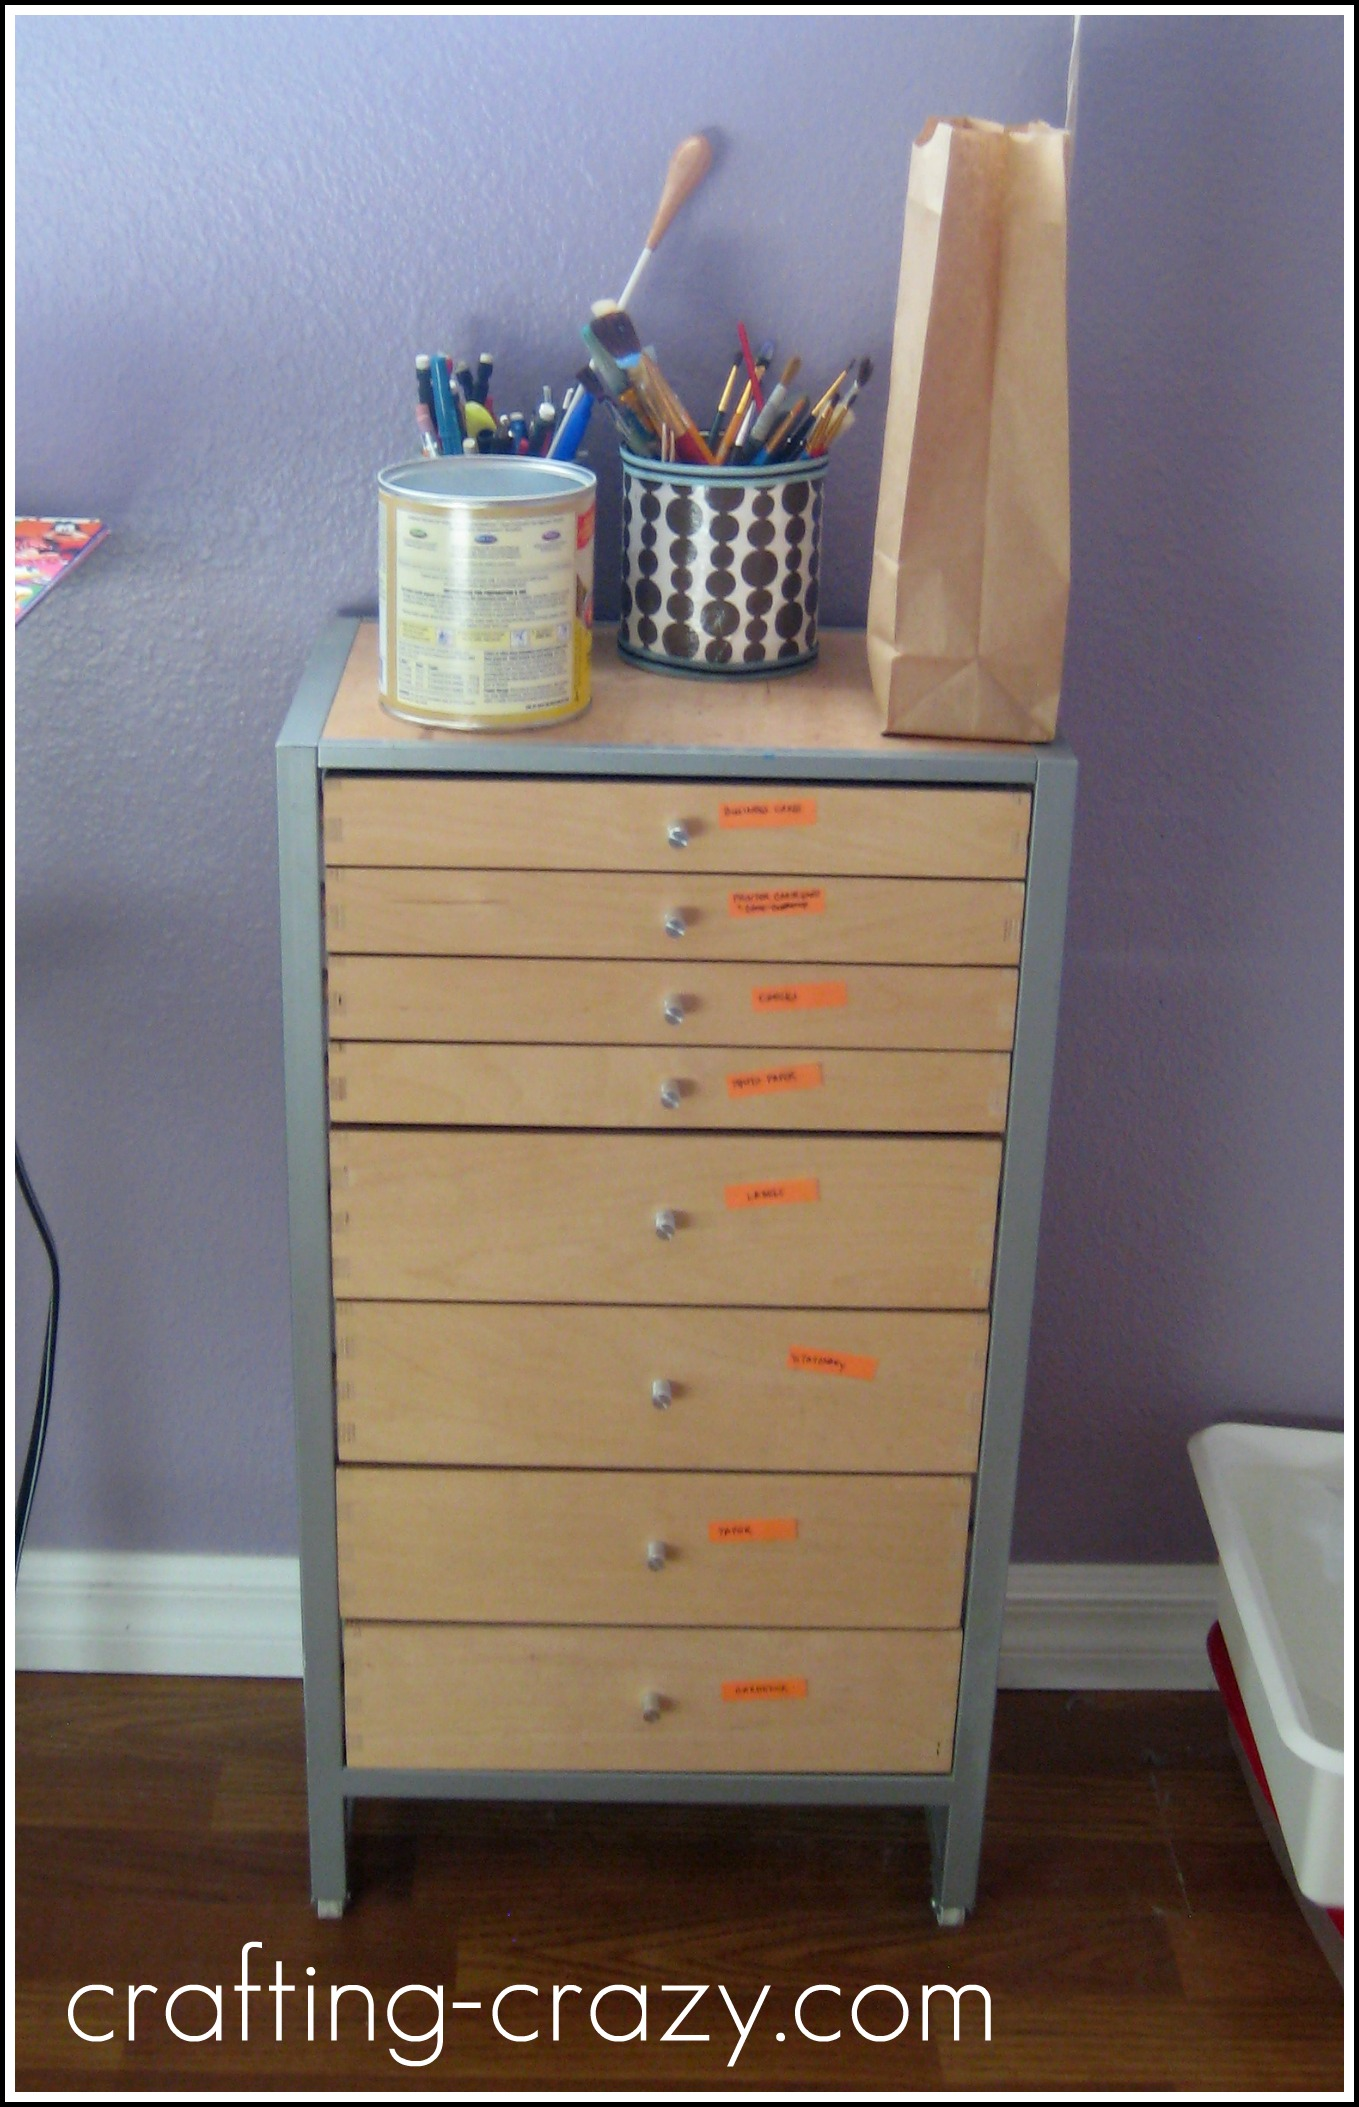 ikea office drawer makeover mod podge natalie chiles